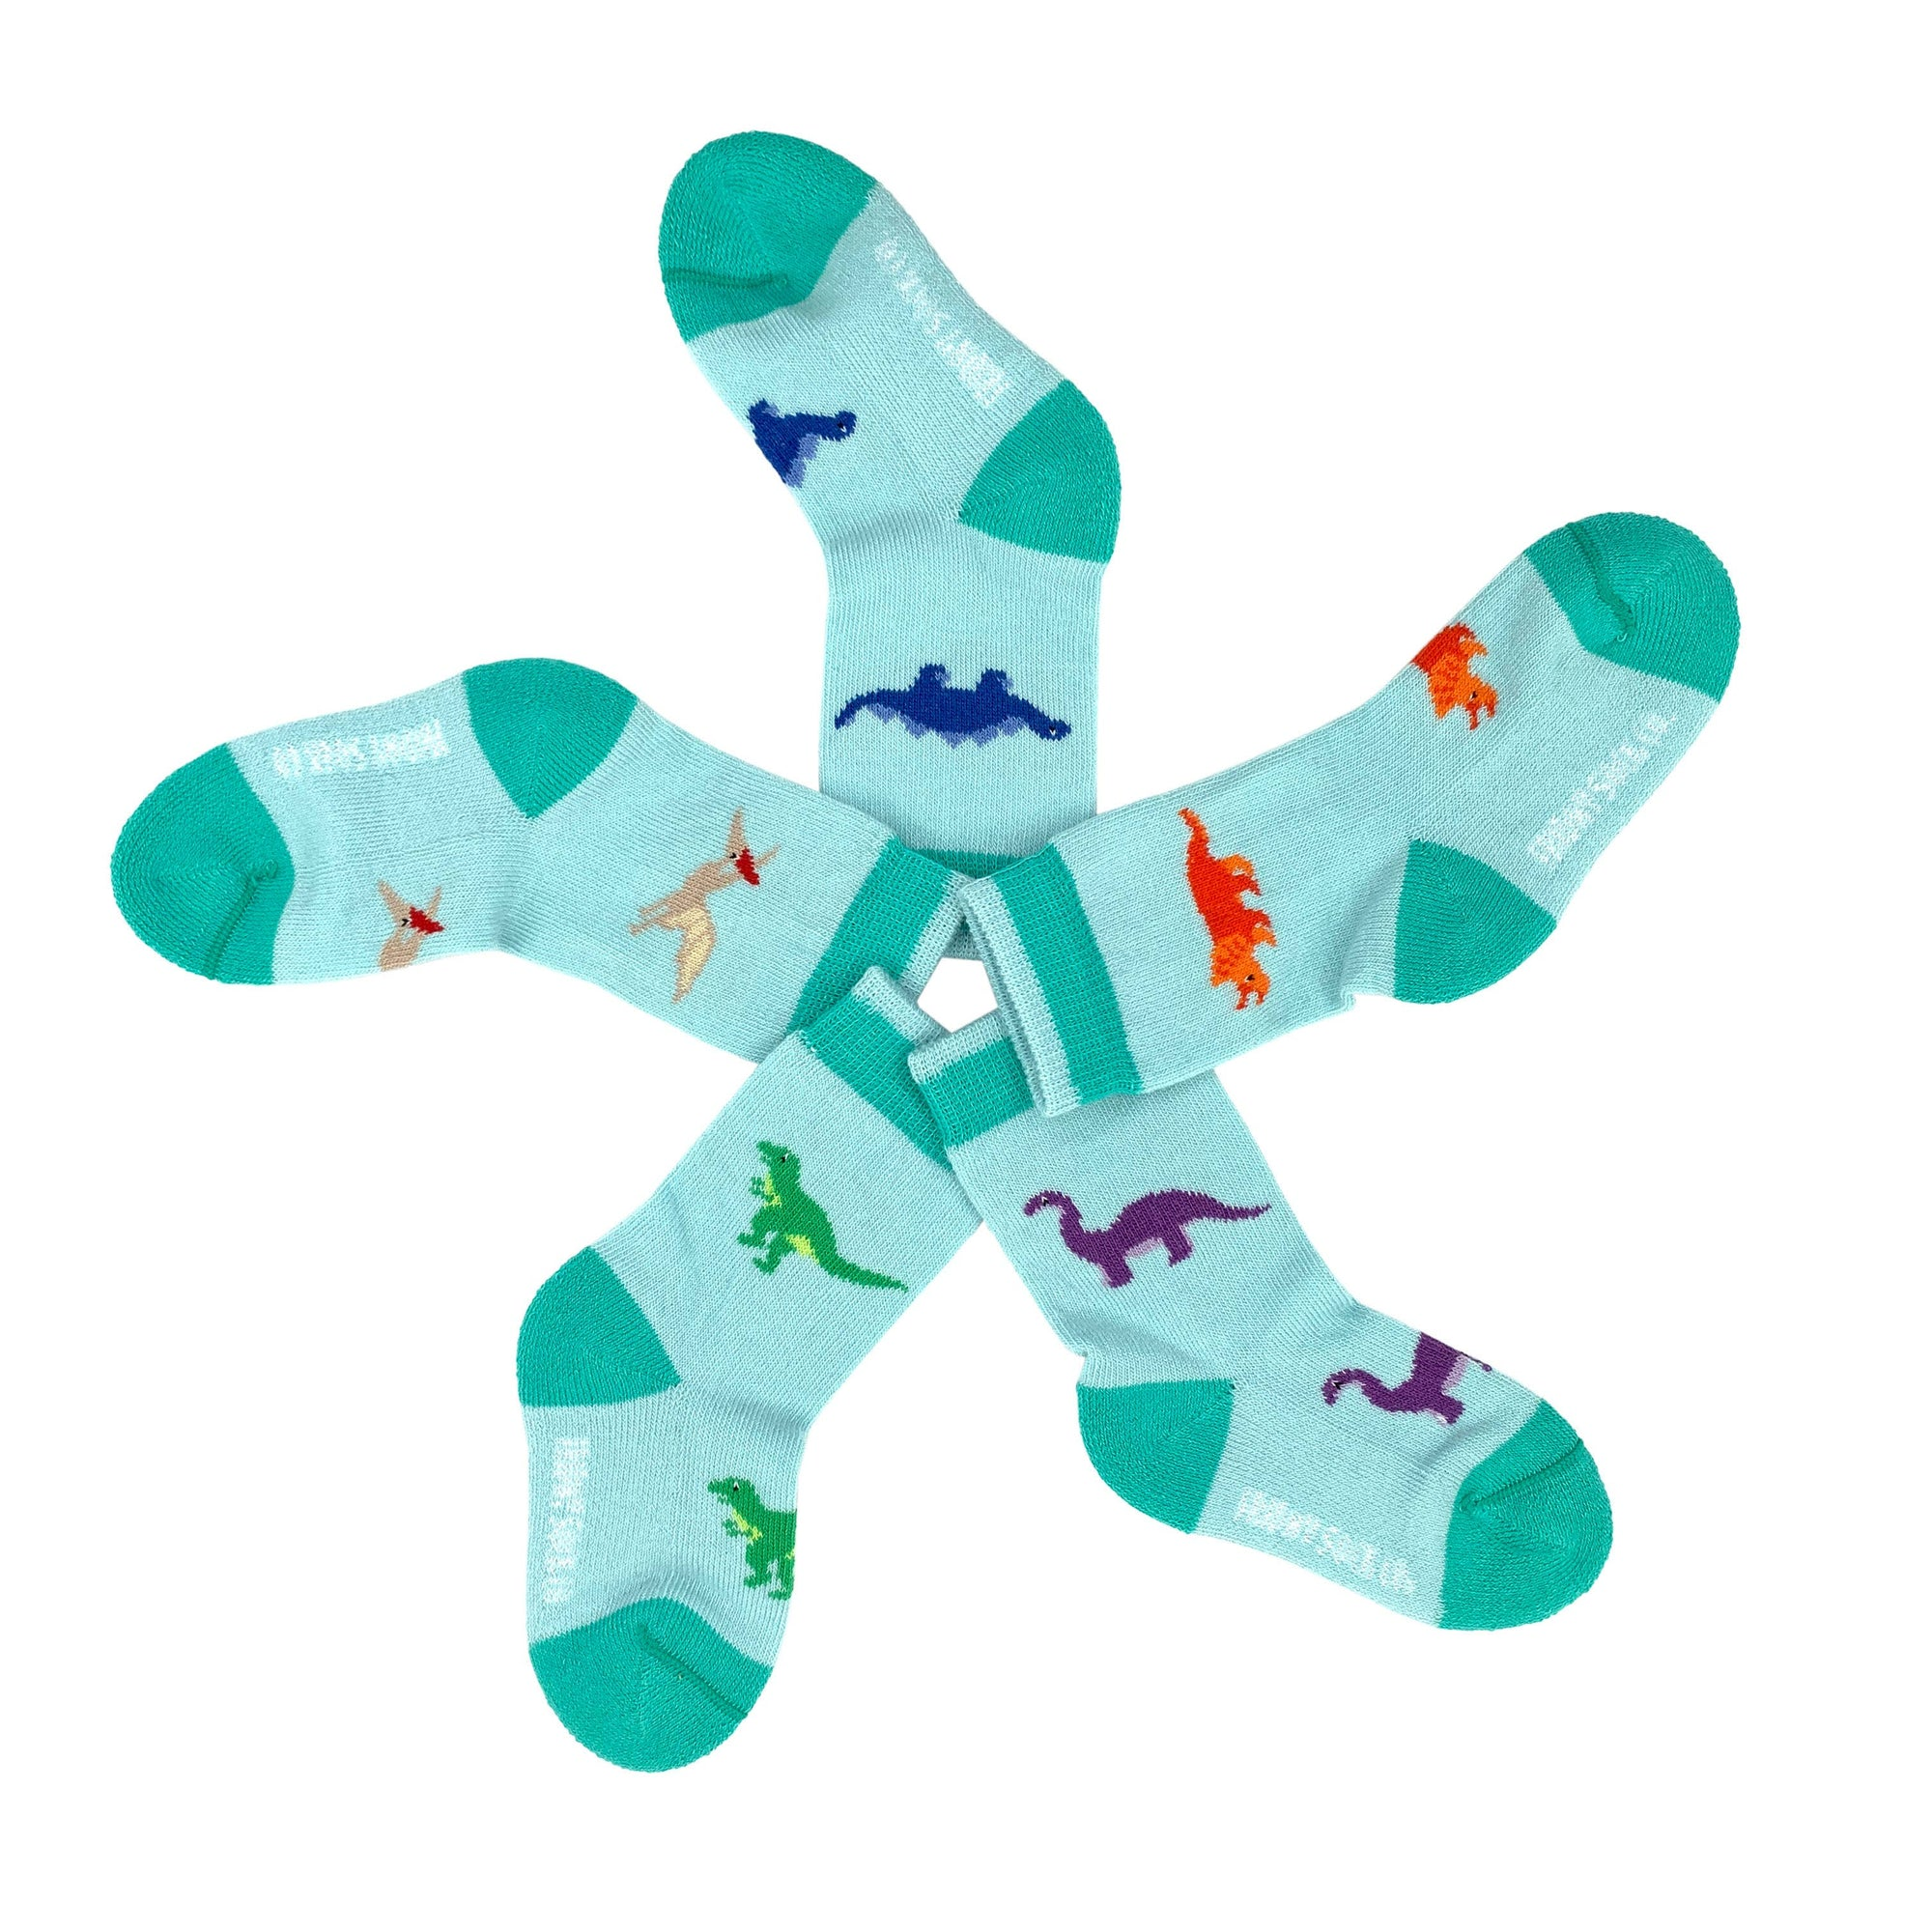 Friday Sock Co. Baby Socks | Dinosaur | Mismatched | Infant - 3m-1y